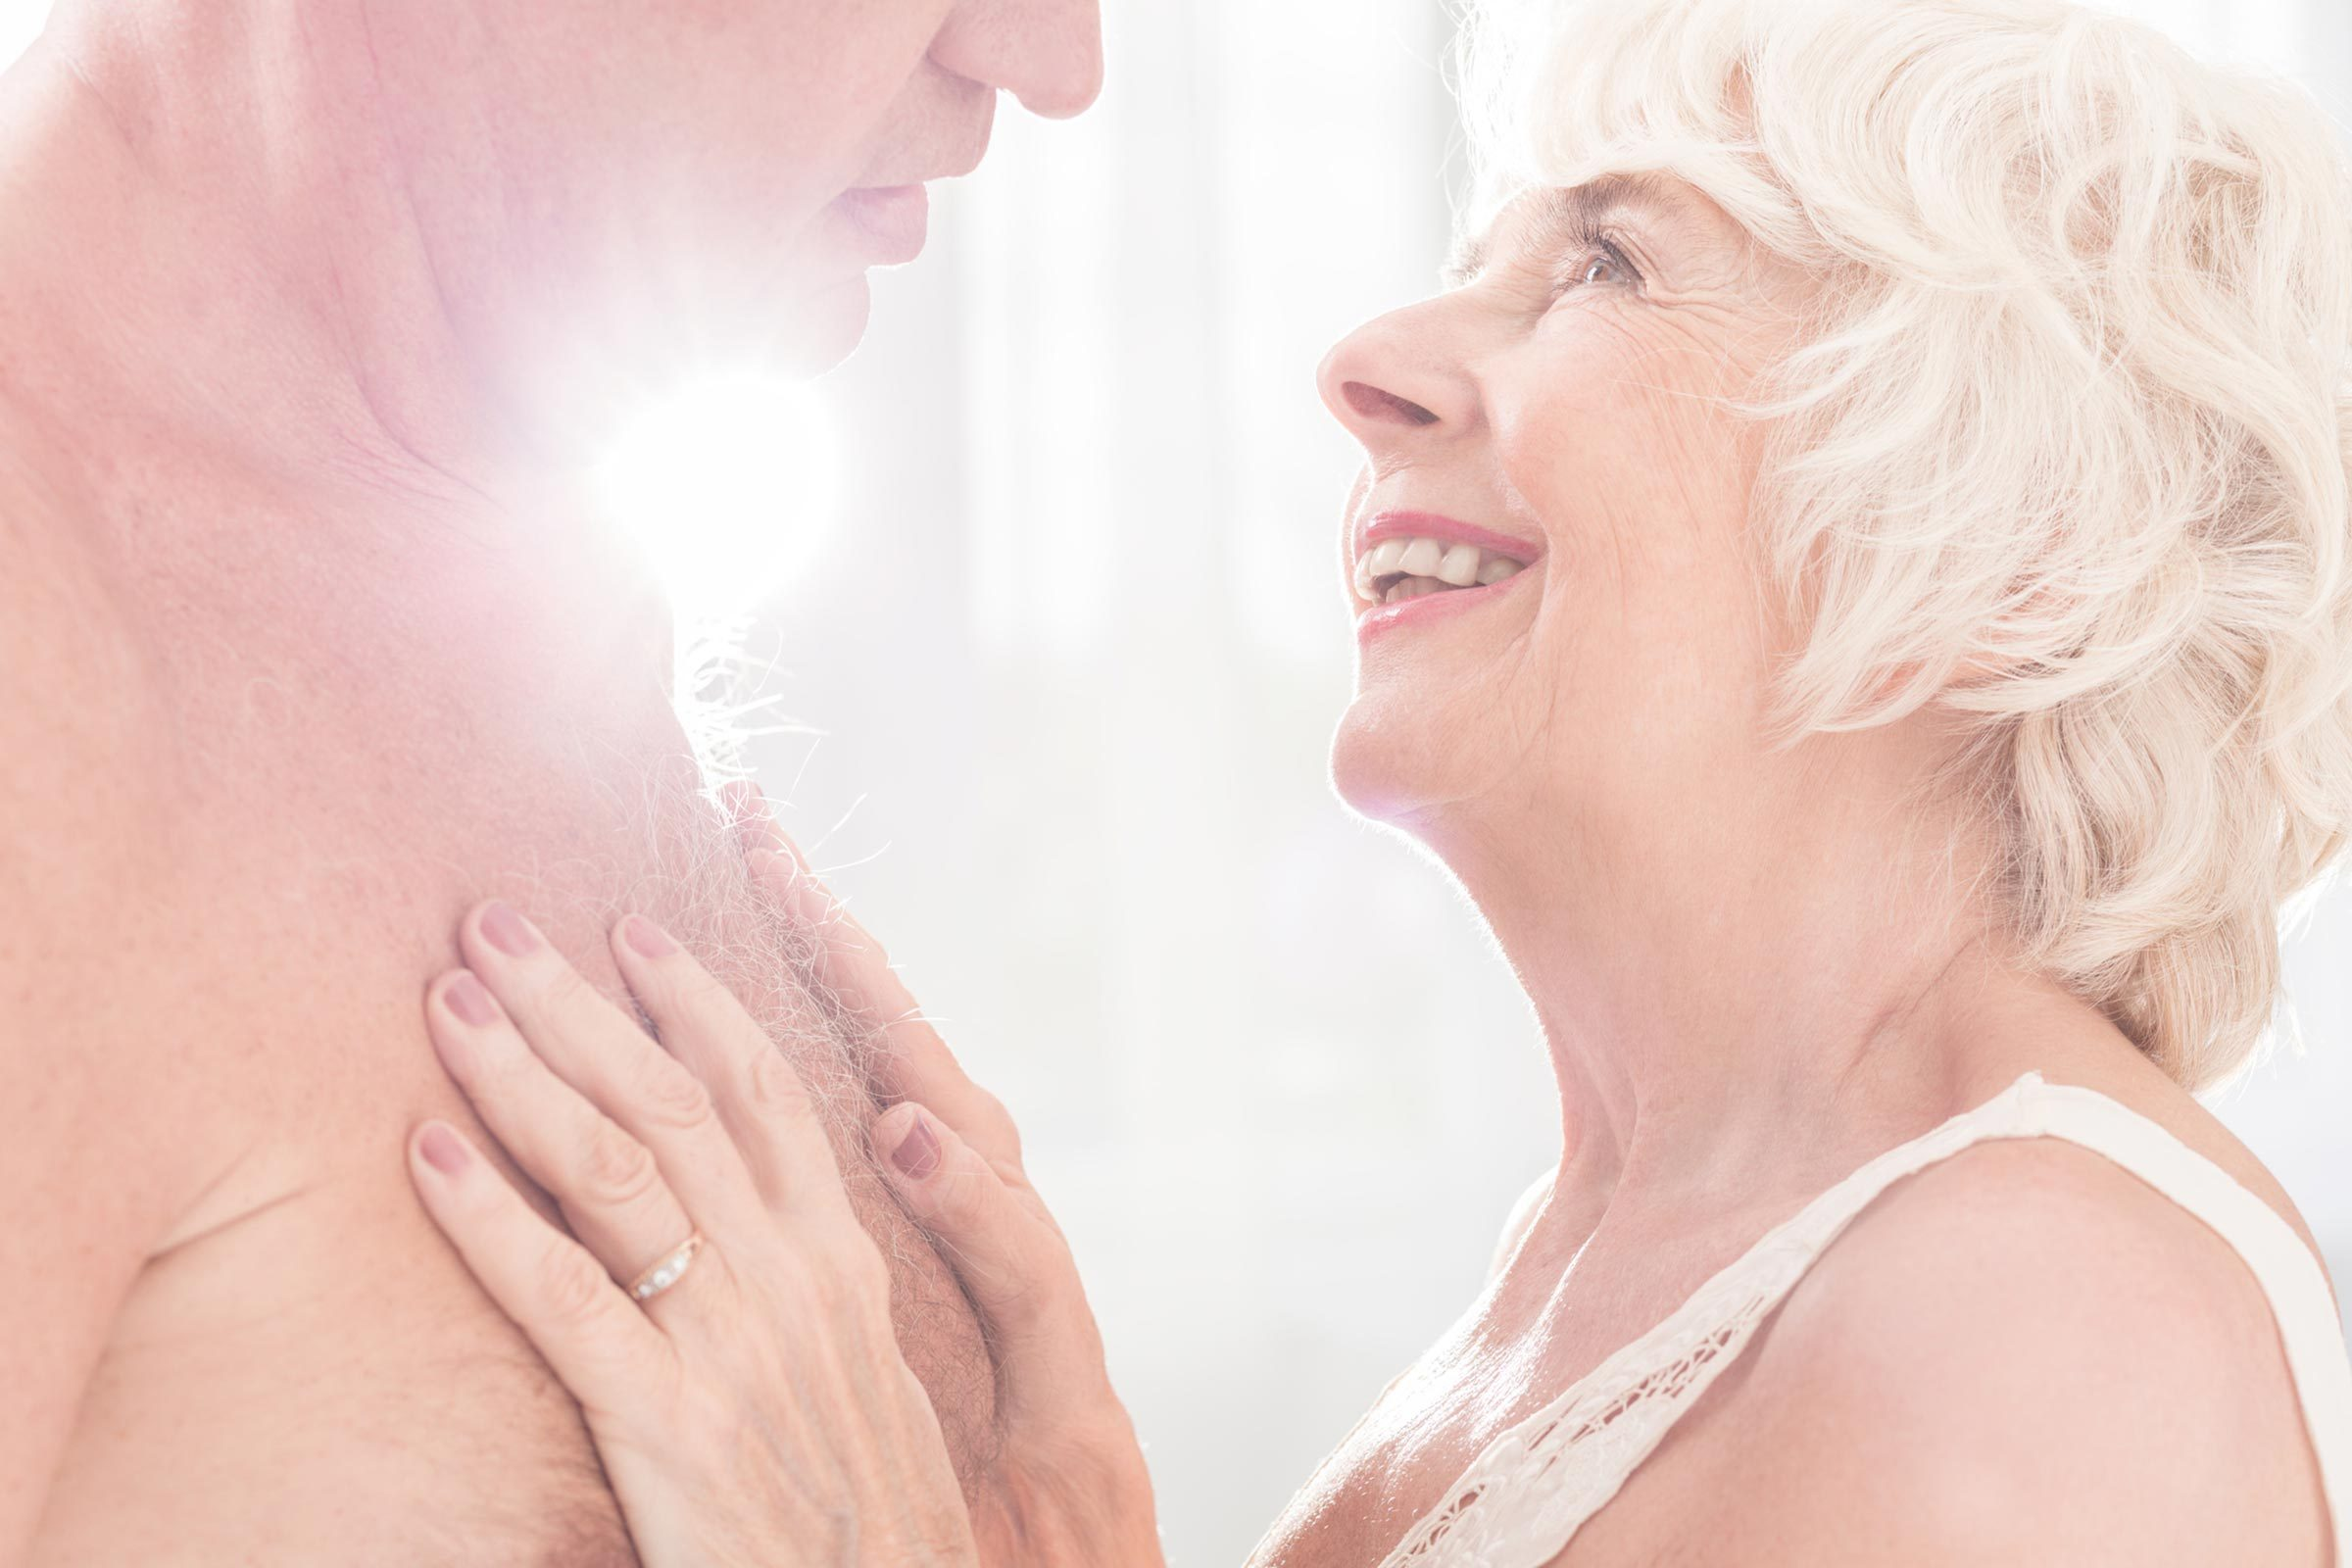 Oral sex and menopause